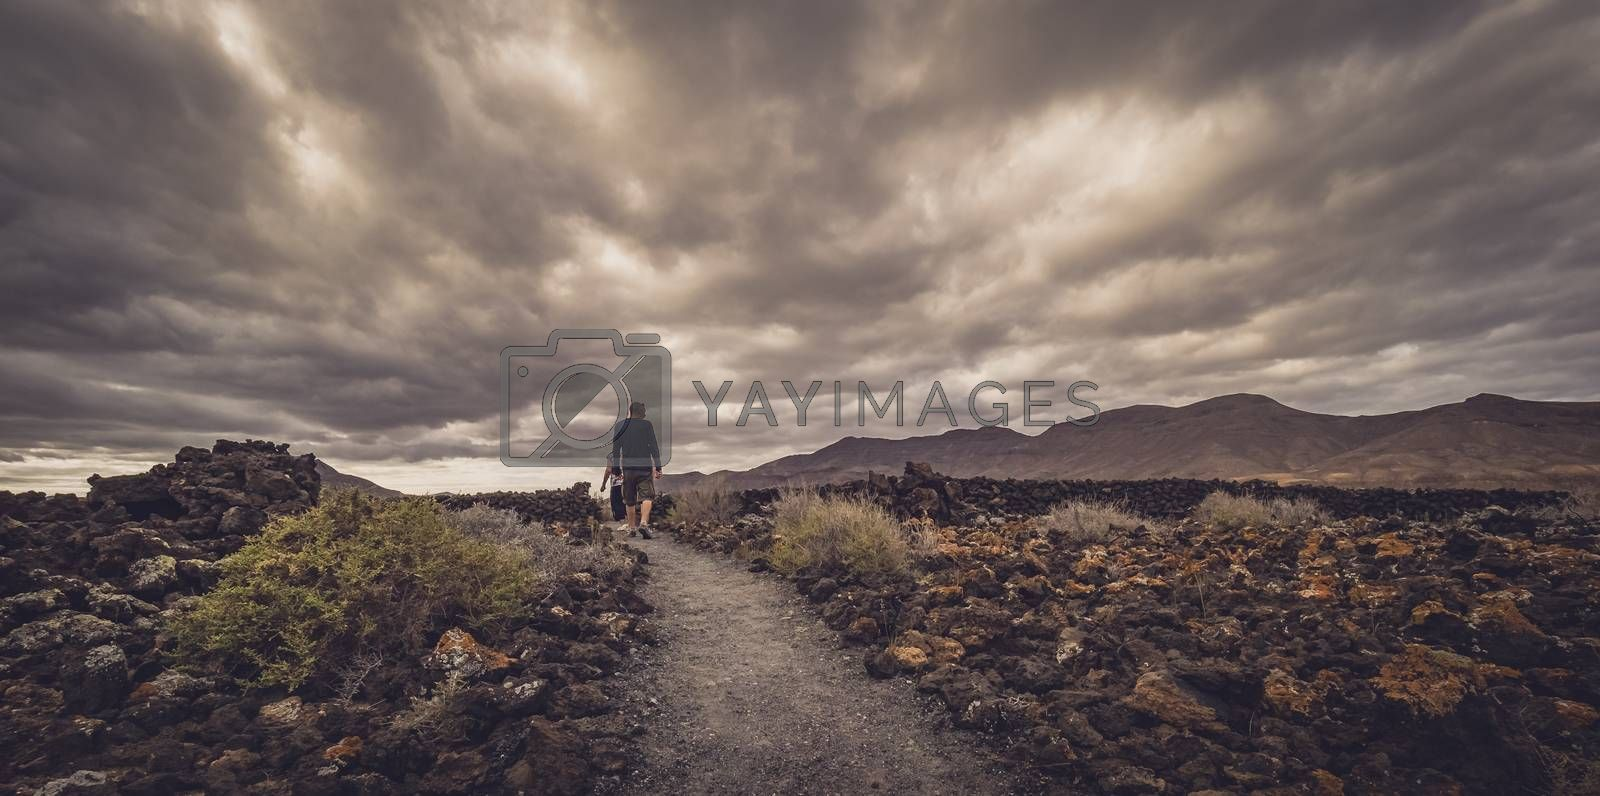 Royalty free image of Man walking on a path by pawopa3336